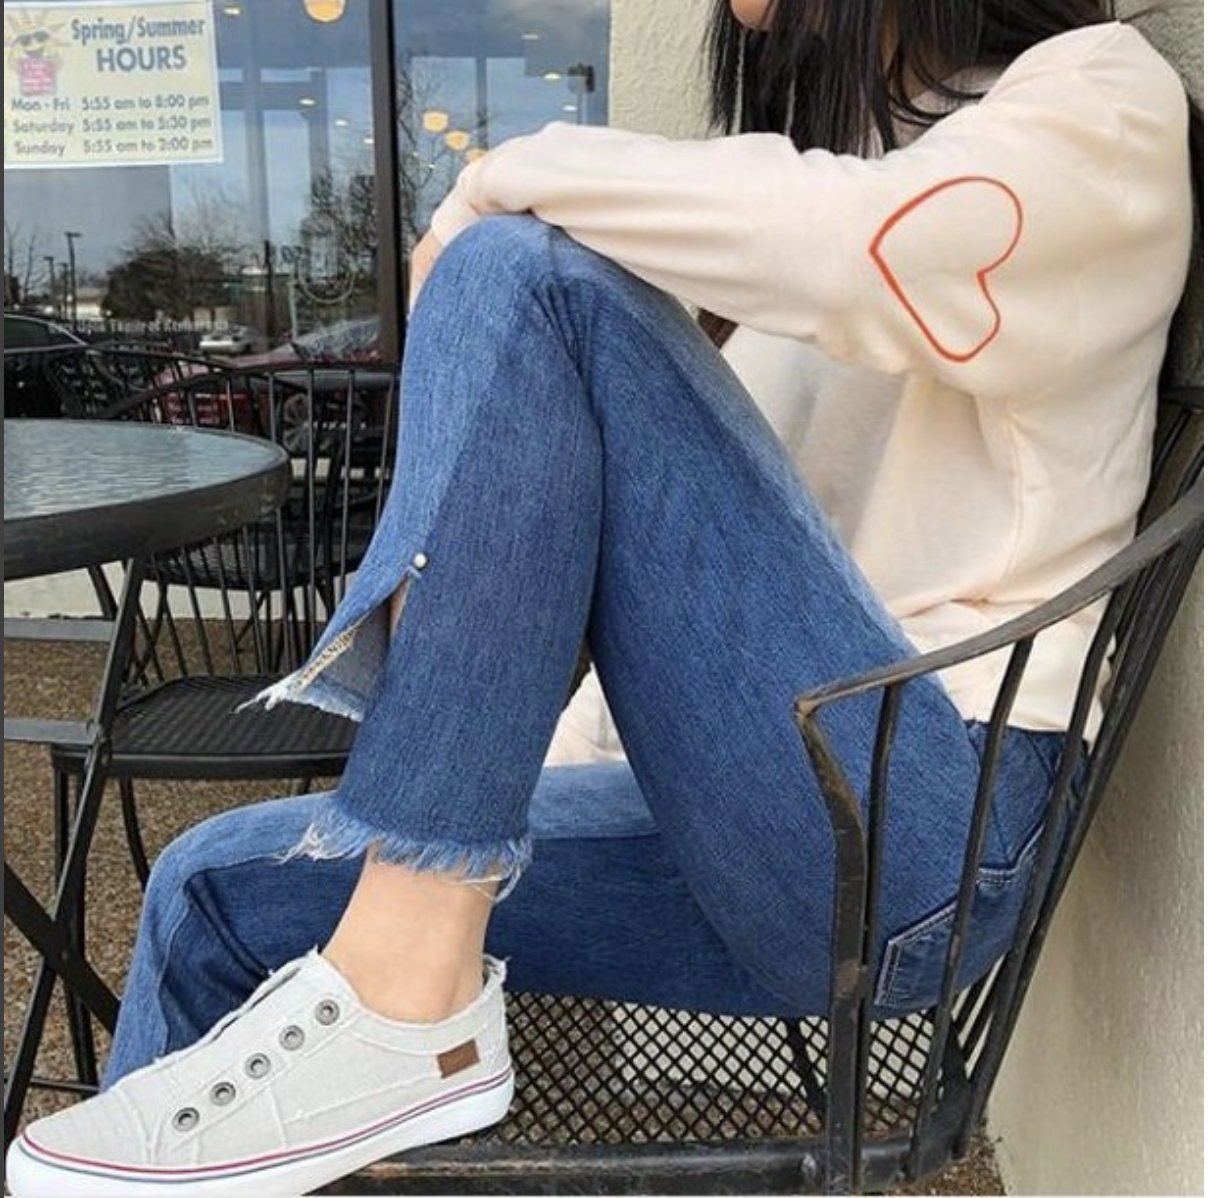 166c5d4bb9727 Guess Which Sneaker Made Buzzfeed's Best Fashion Sneakers List on ...